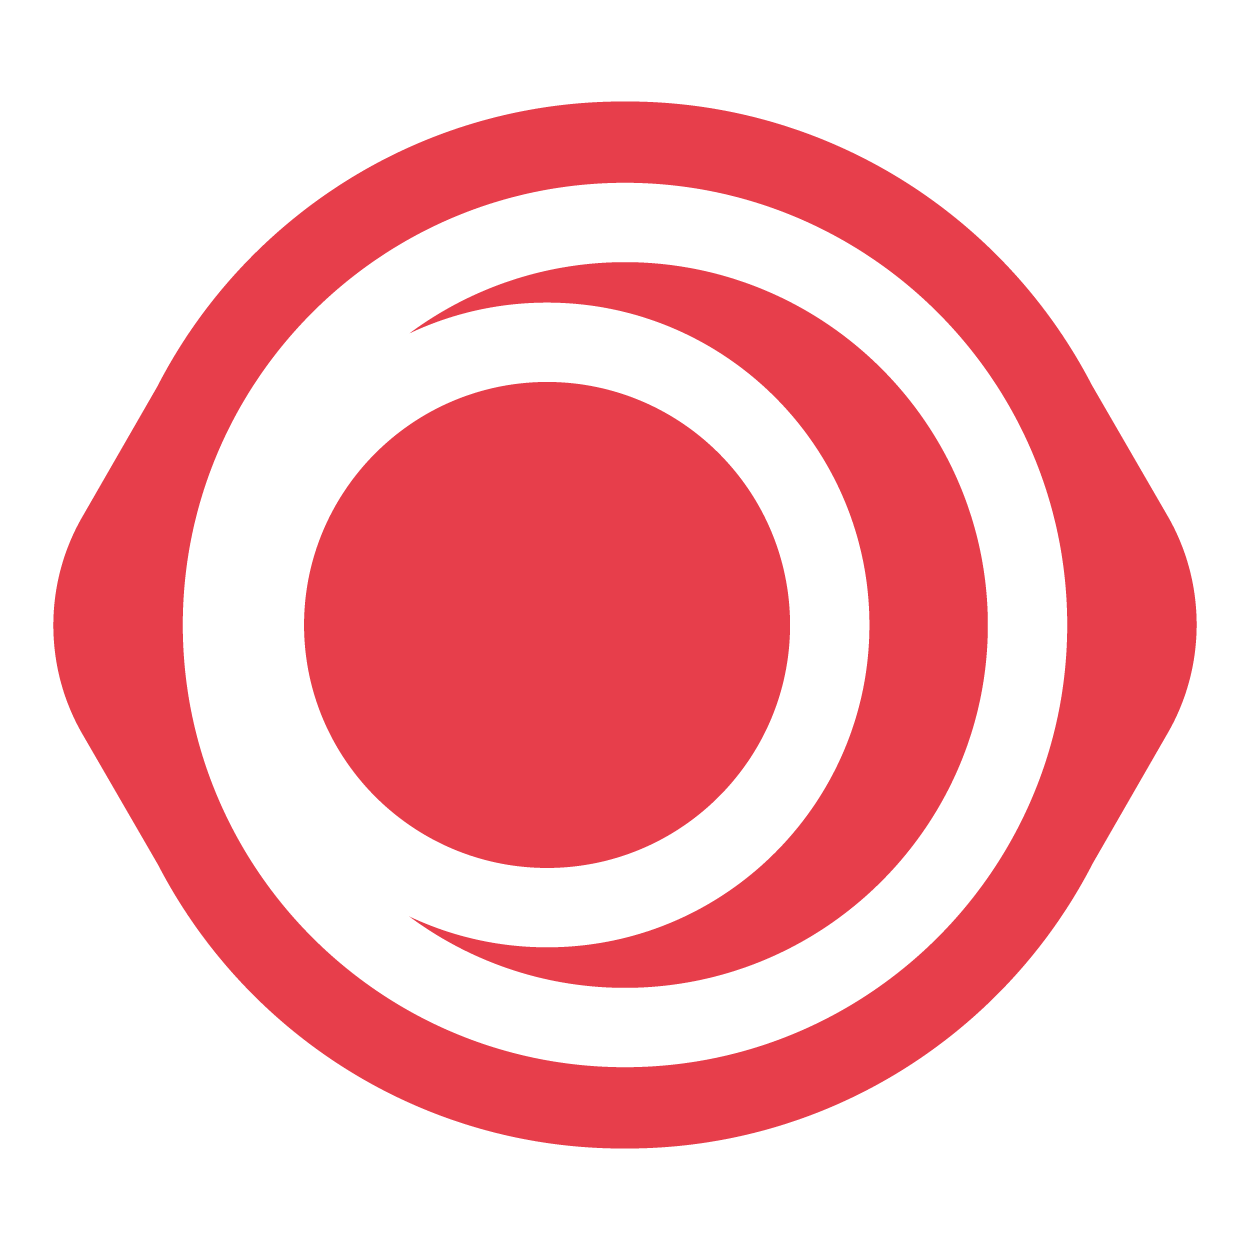 Pocket-Icon-01.png